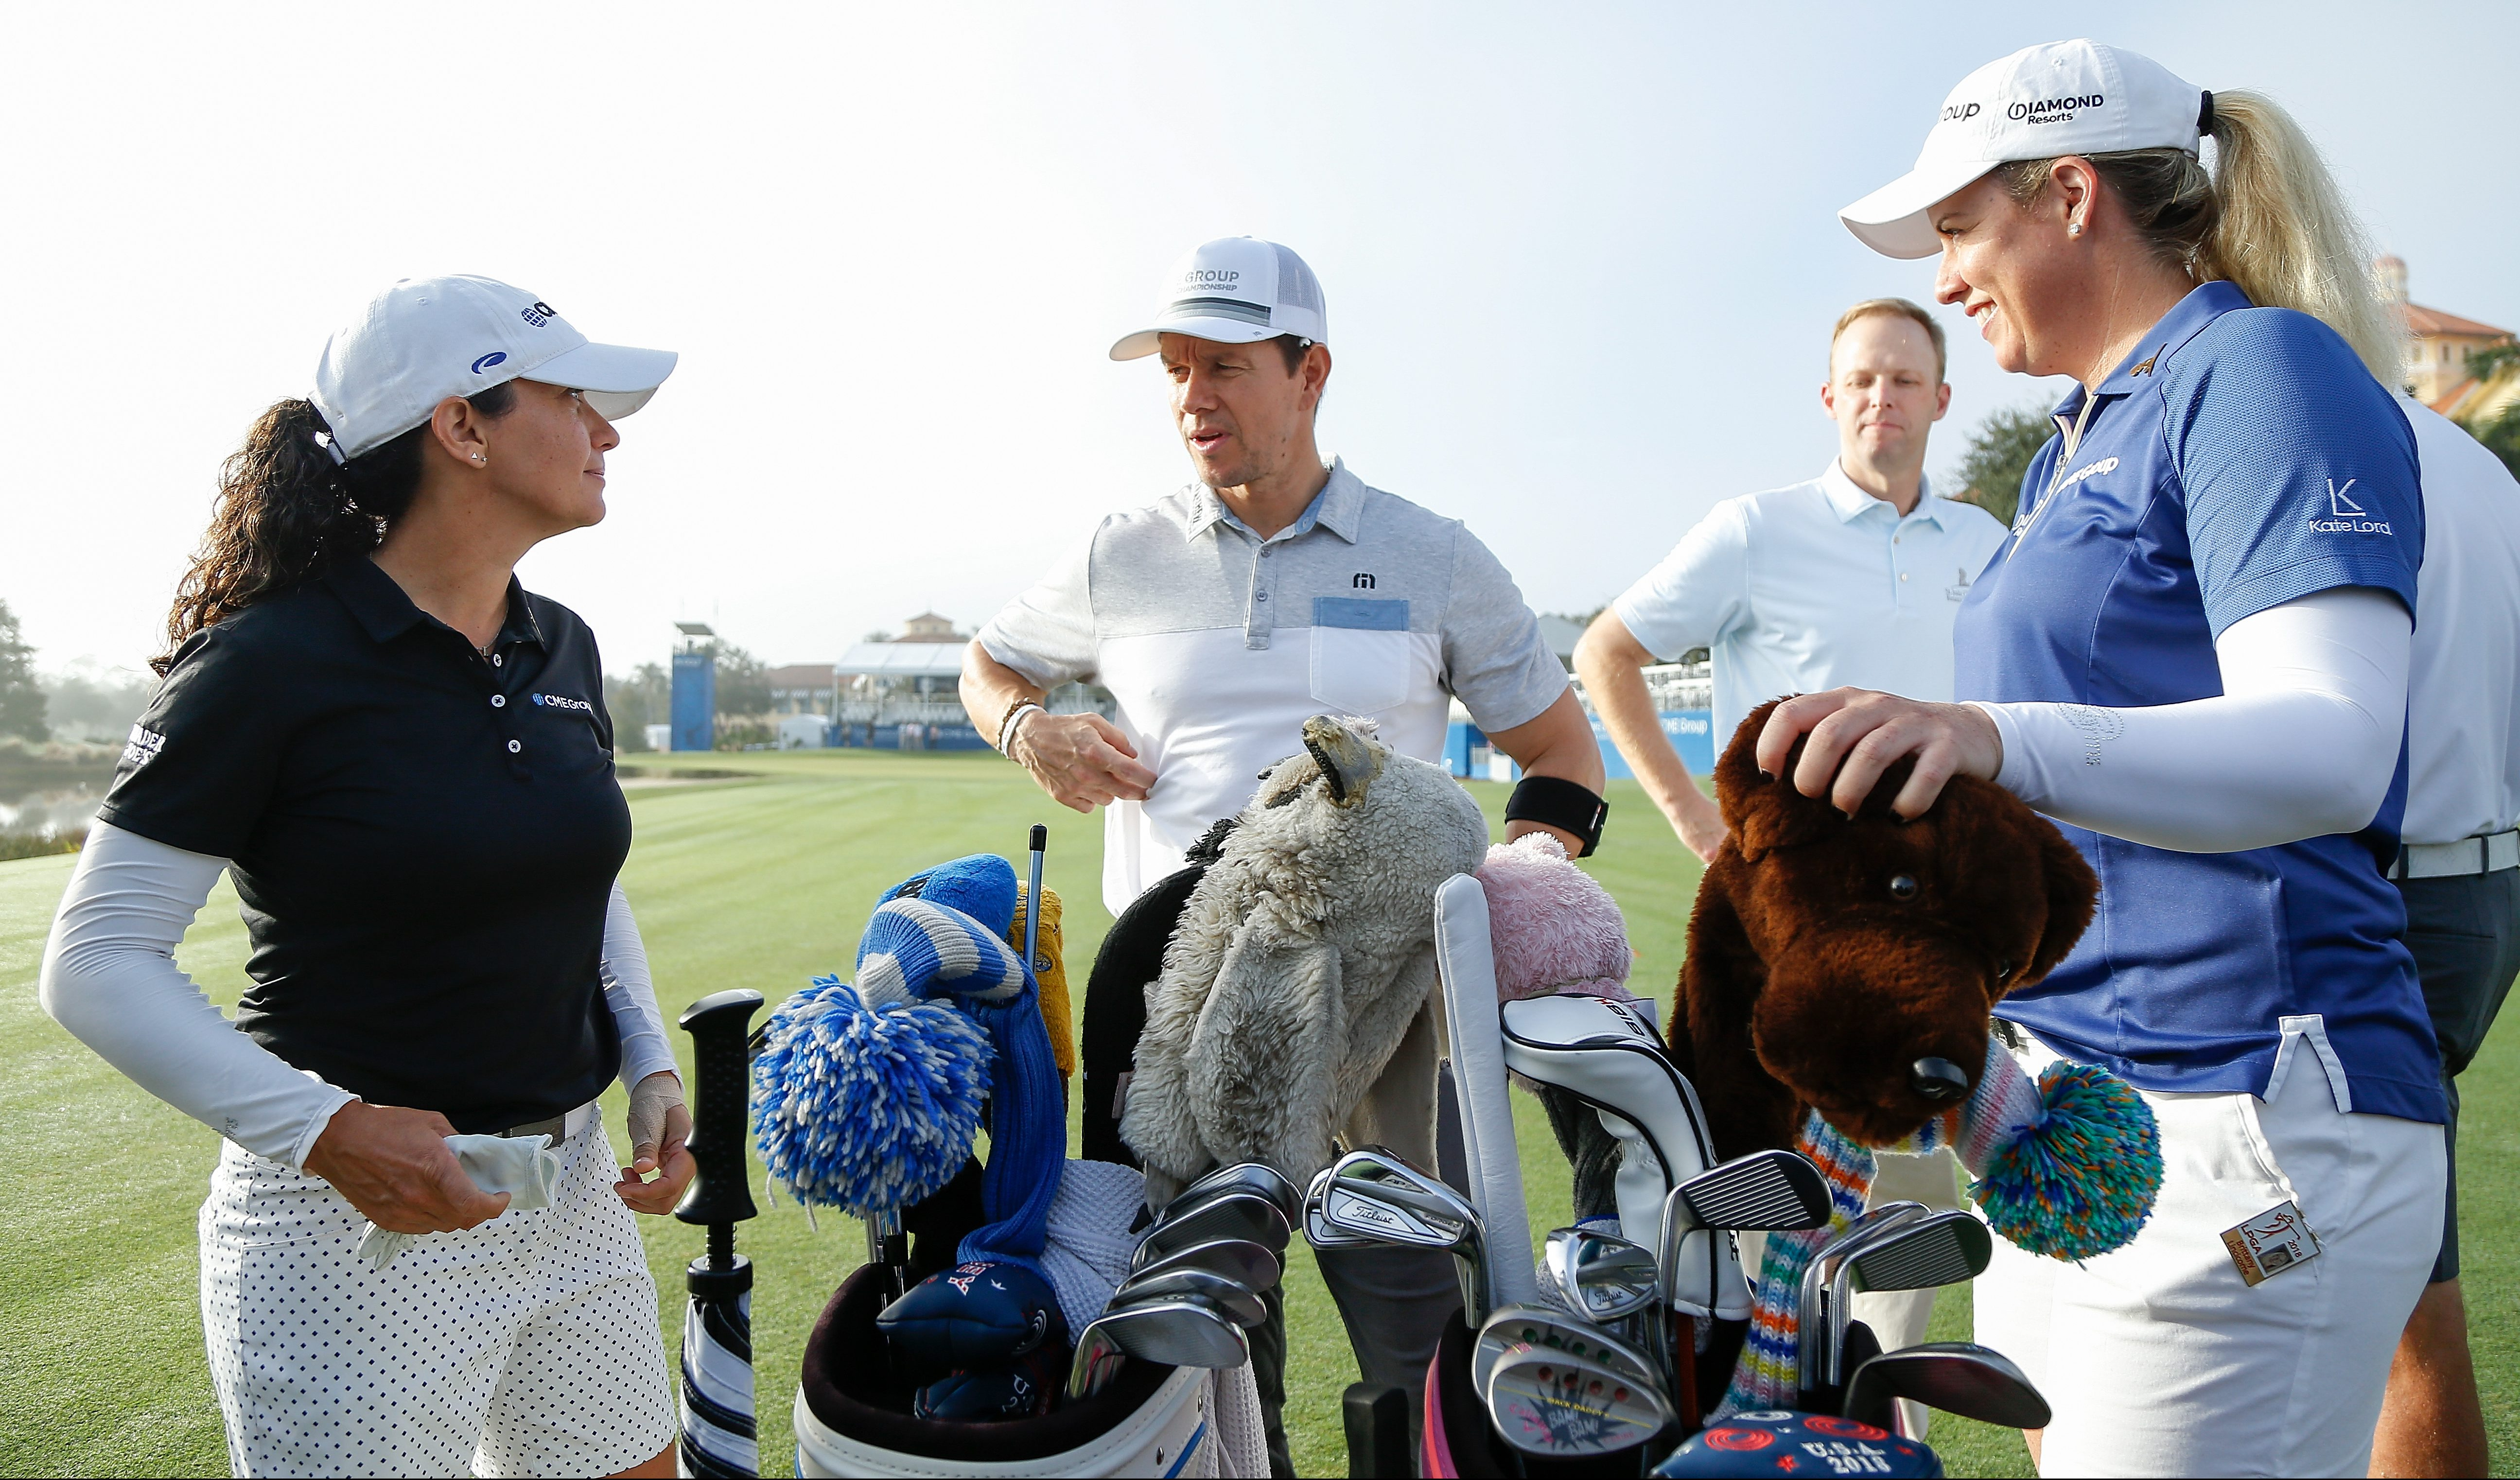 NAPLES, FL - NOVEMBER 14: Actor Mark Wahlberg (center) talks with LPGA golfers Mo Martin (left) and Brittany Lincicome during the CME Group charity event to benefit St. Jude Children's Research Hospital prior to the LPGA CME Group Tour Championship at Tiburon Golf Club on November 14, 2018 in Naples, Florida. (Photo by Michael Reaves/Getty Images)